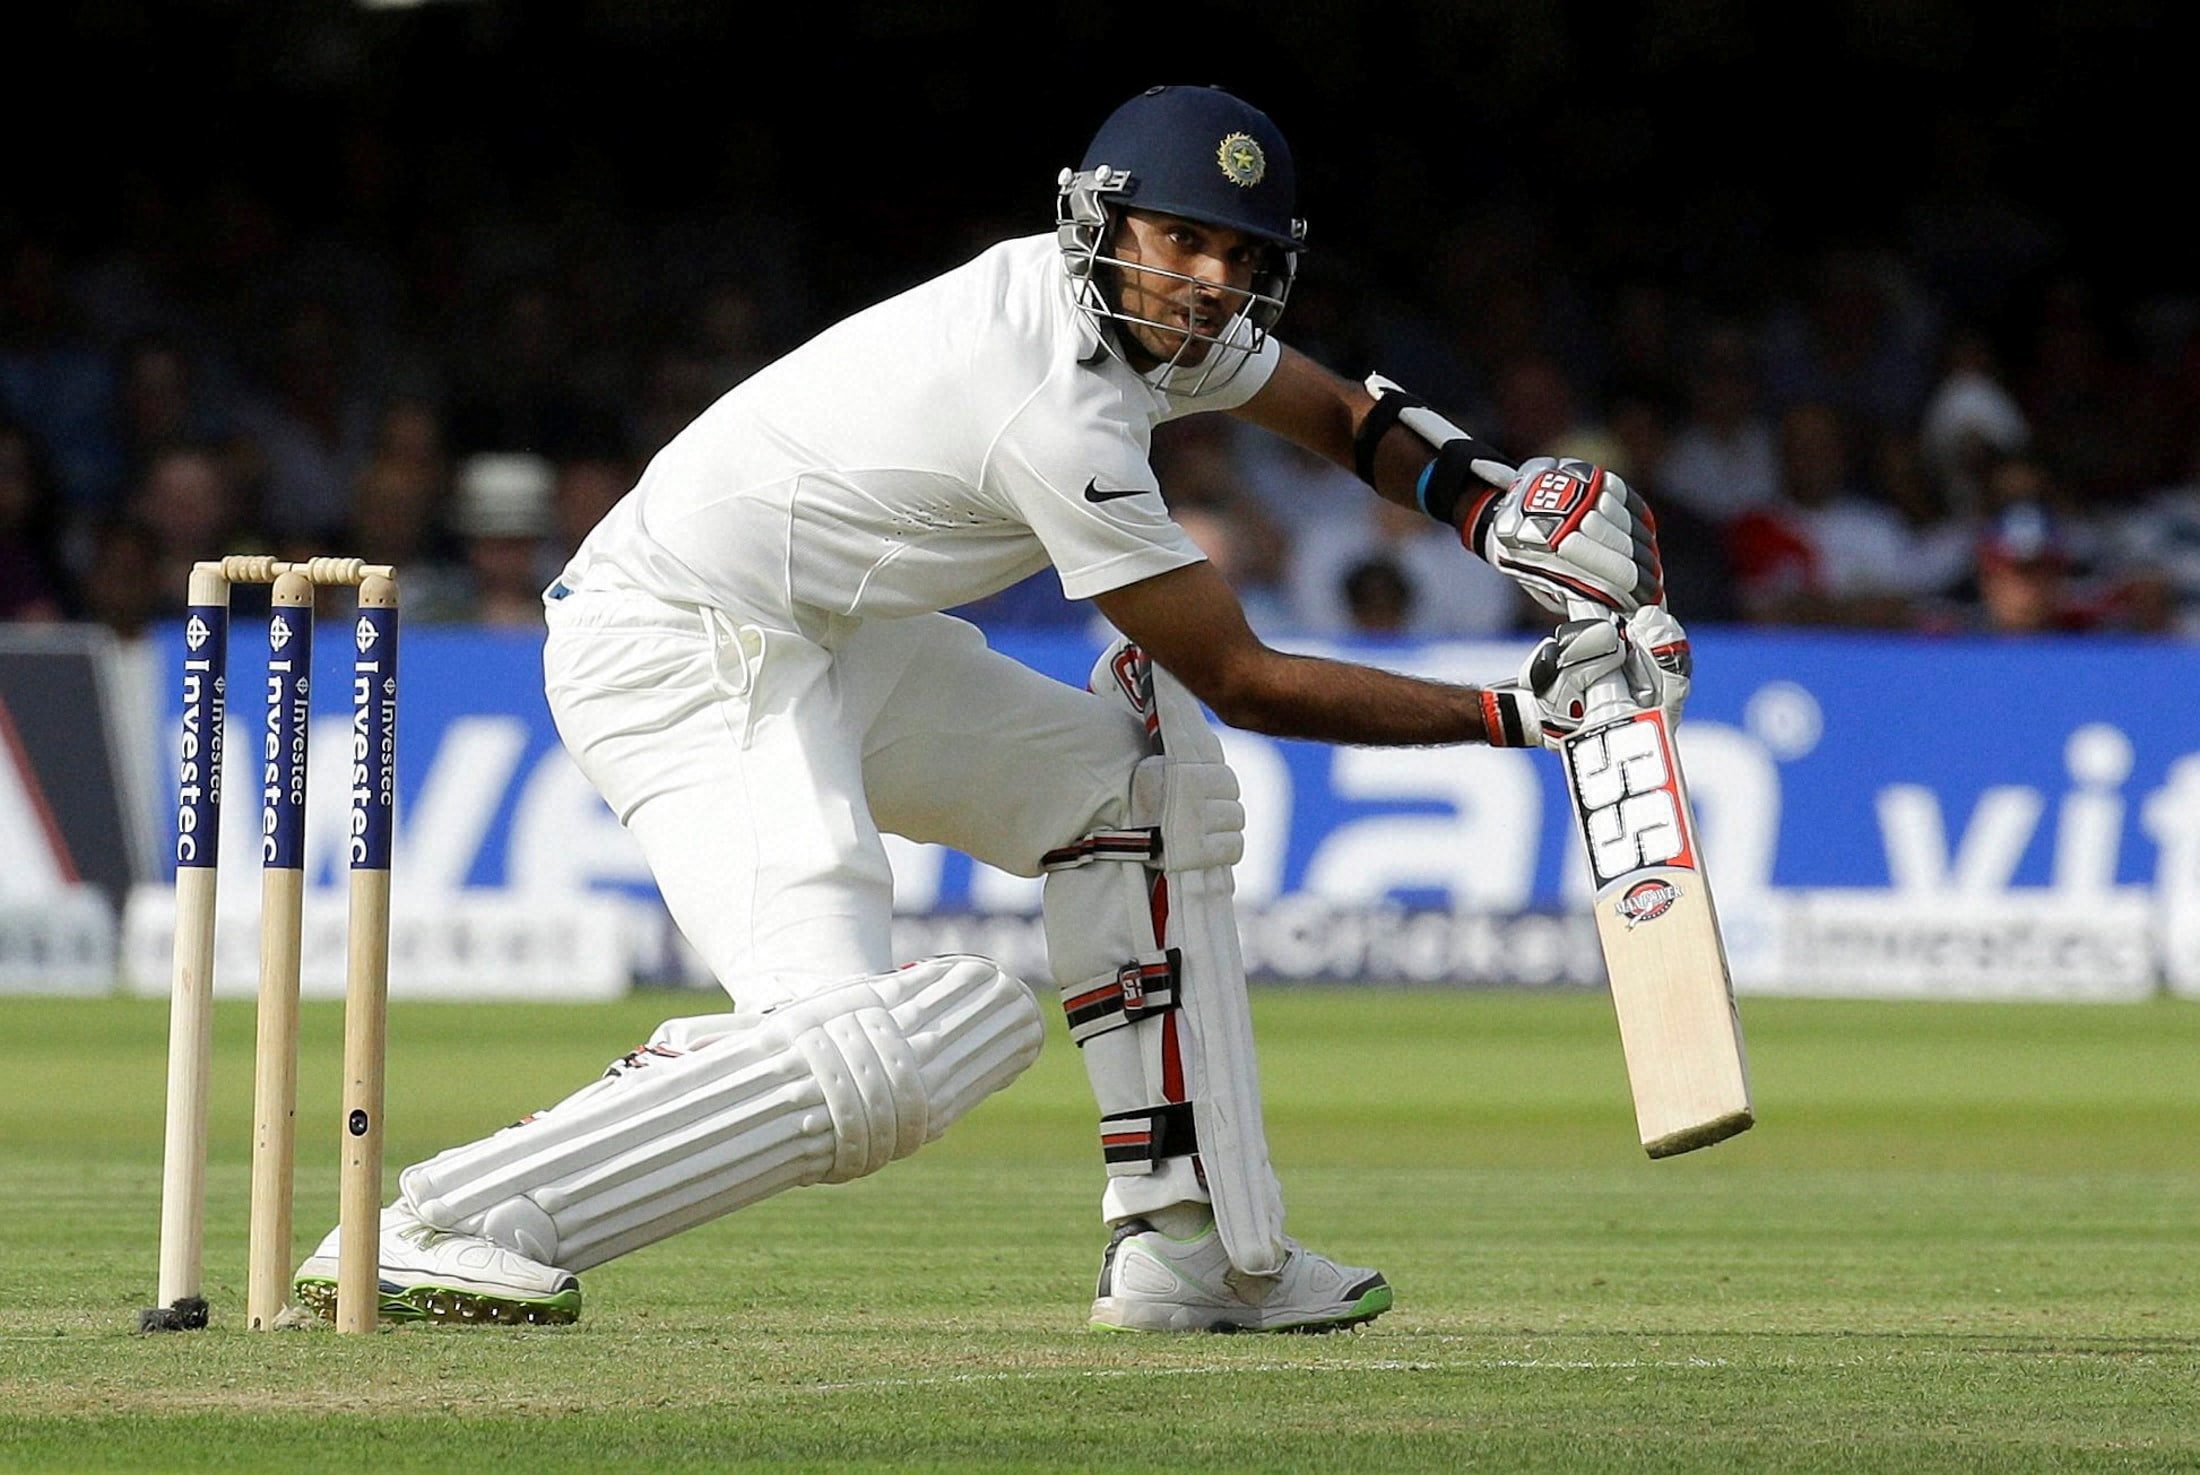 India's, Bhuvneshwar Kumar, plays, shot, bowling, England's, Ben Stokes, first day, second test match, England, India, Lord's, cricket, London